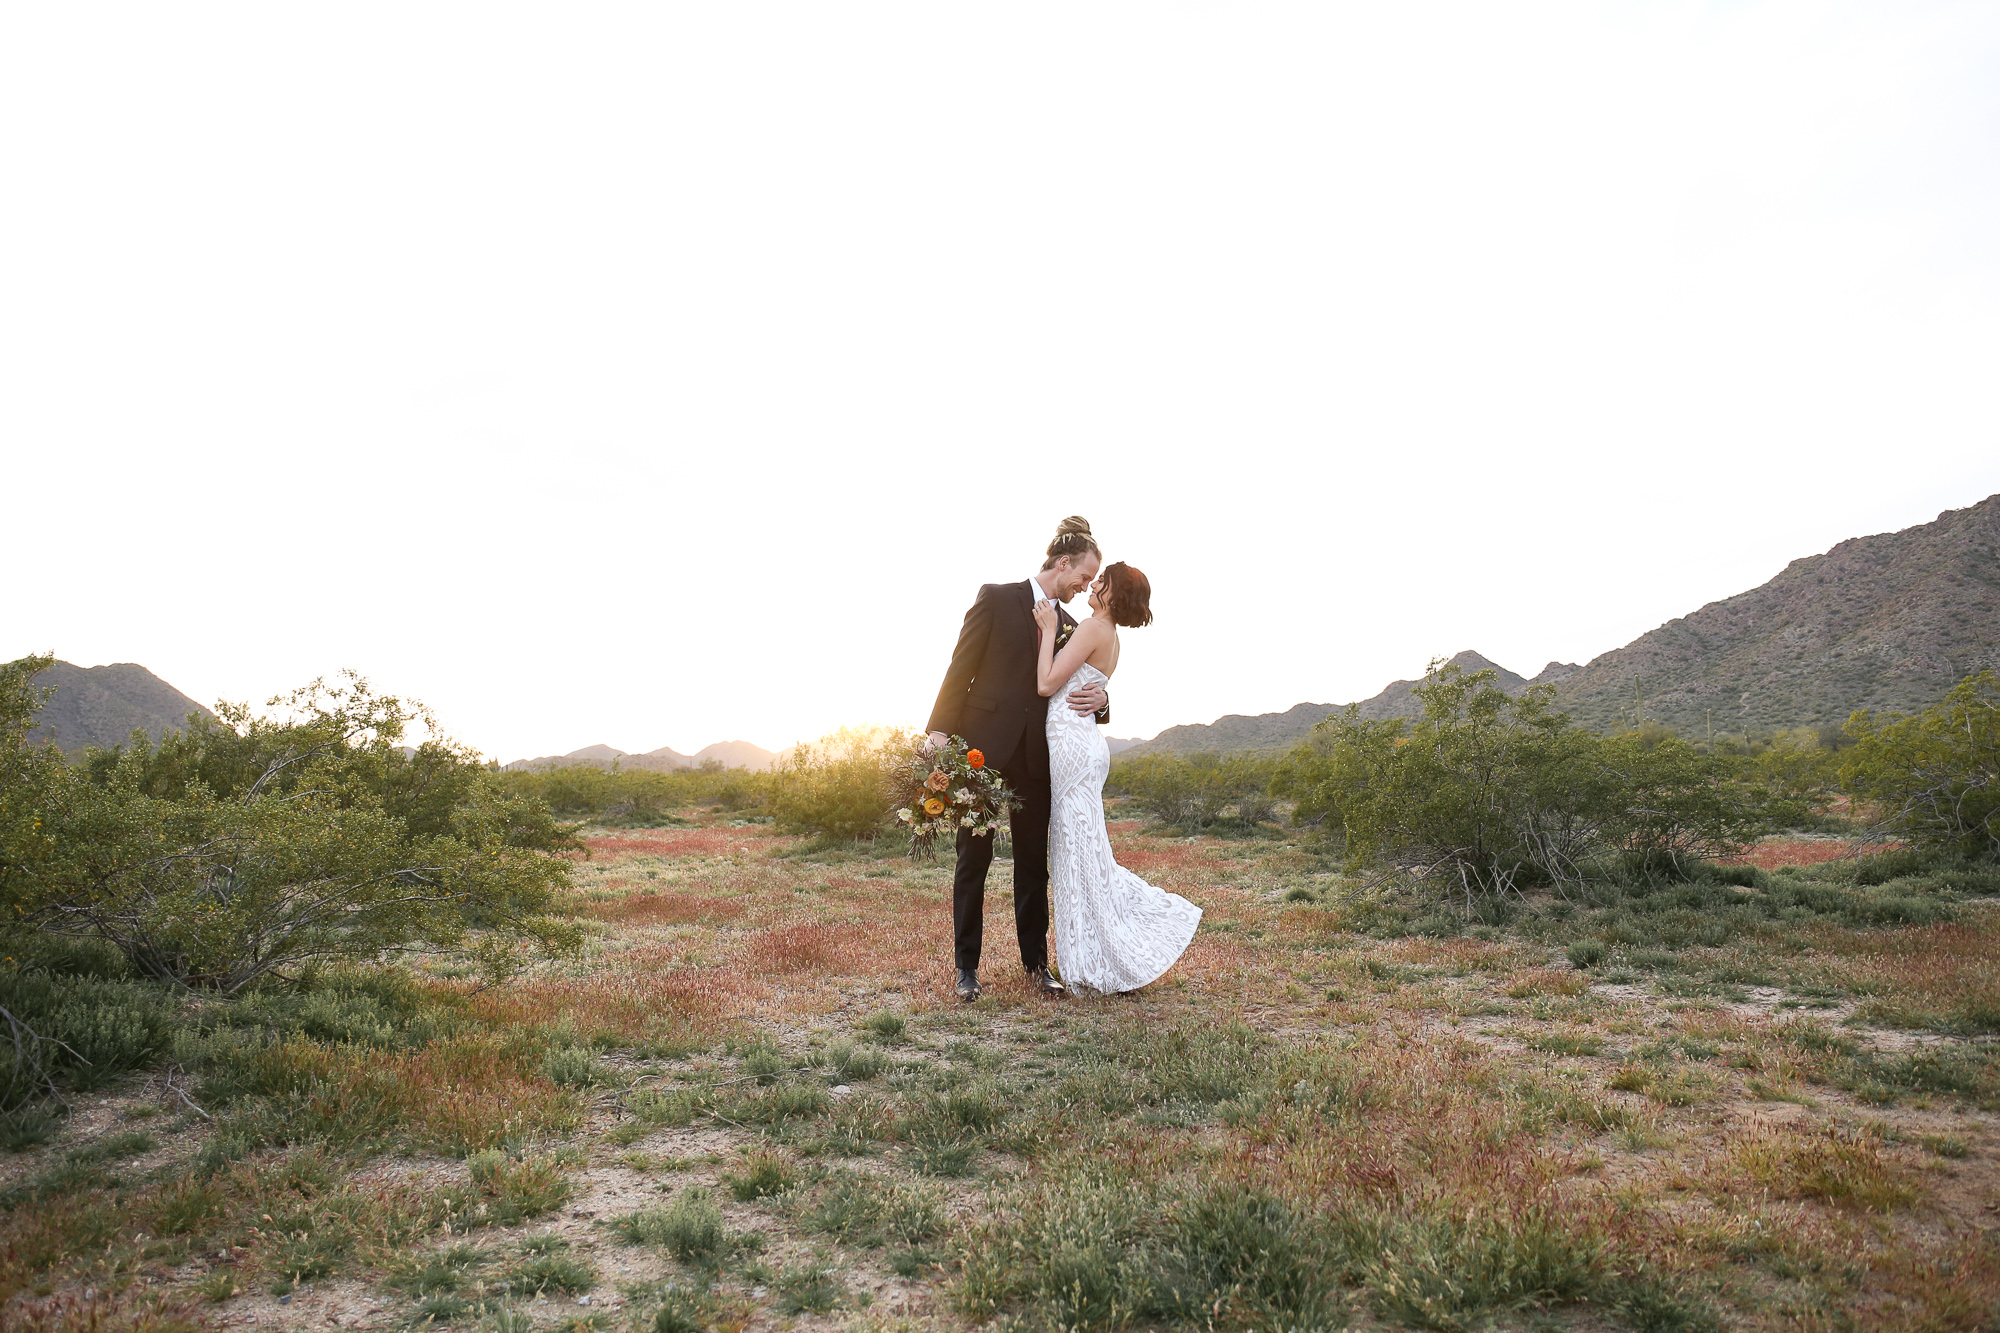 torres_katie_az_wedding_photographer__-14.jpg